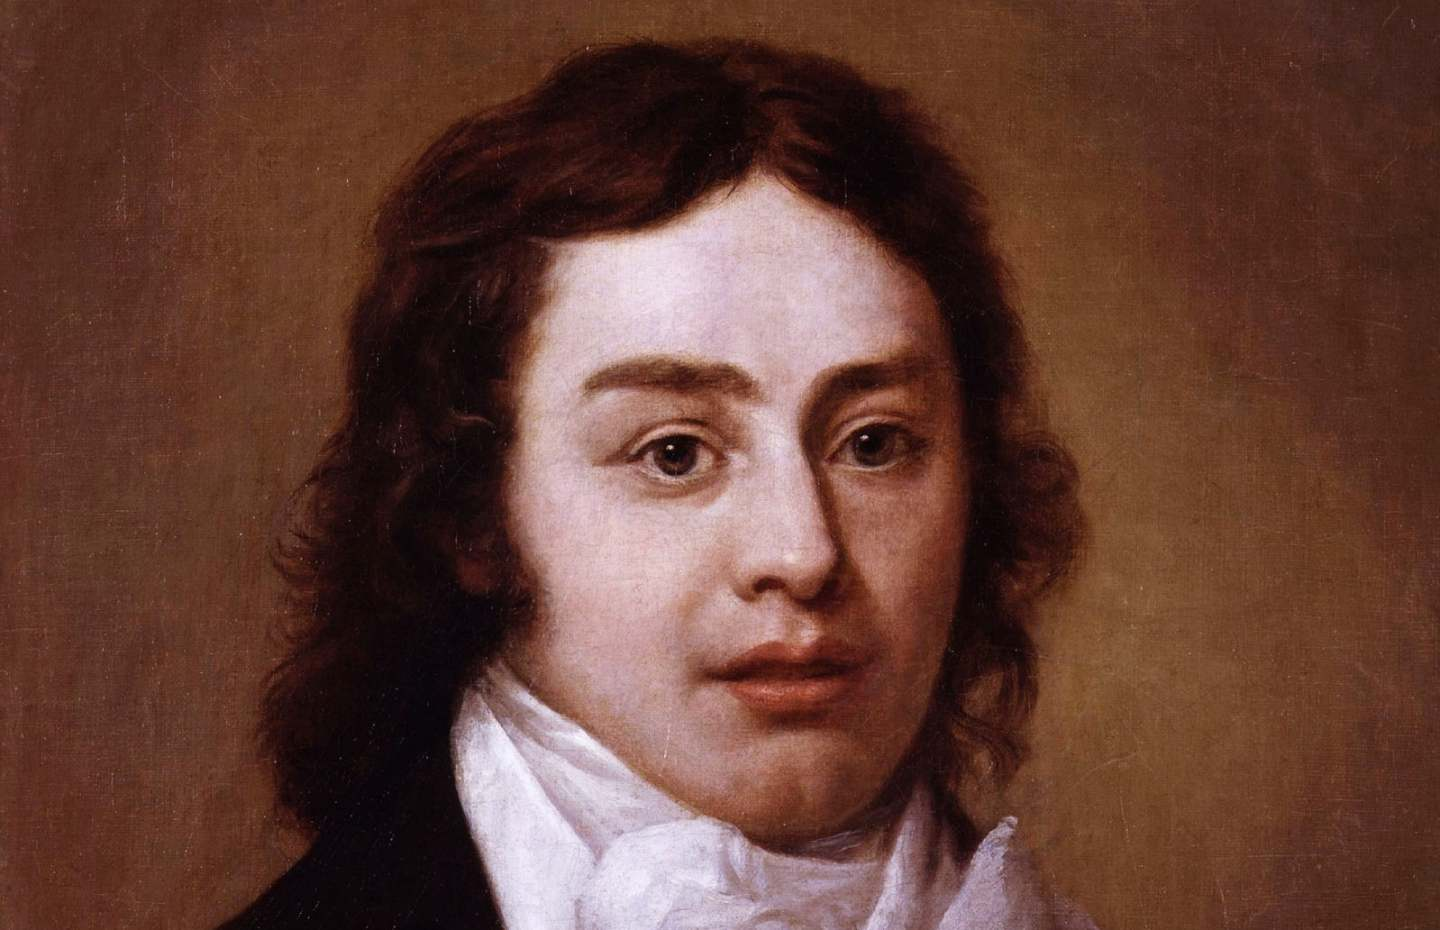 A portrait of Samuel Taylor Coleridge